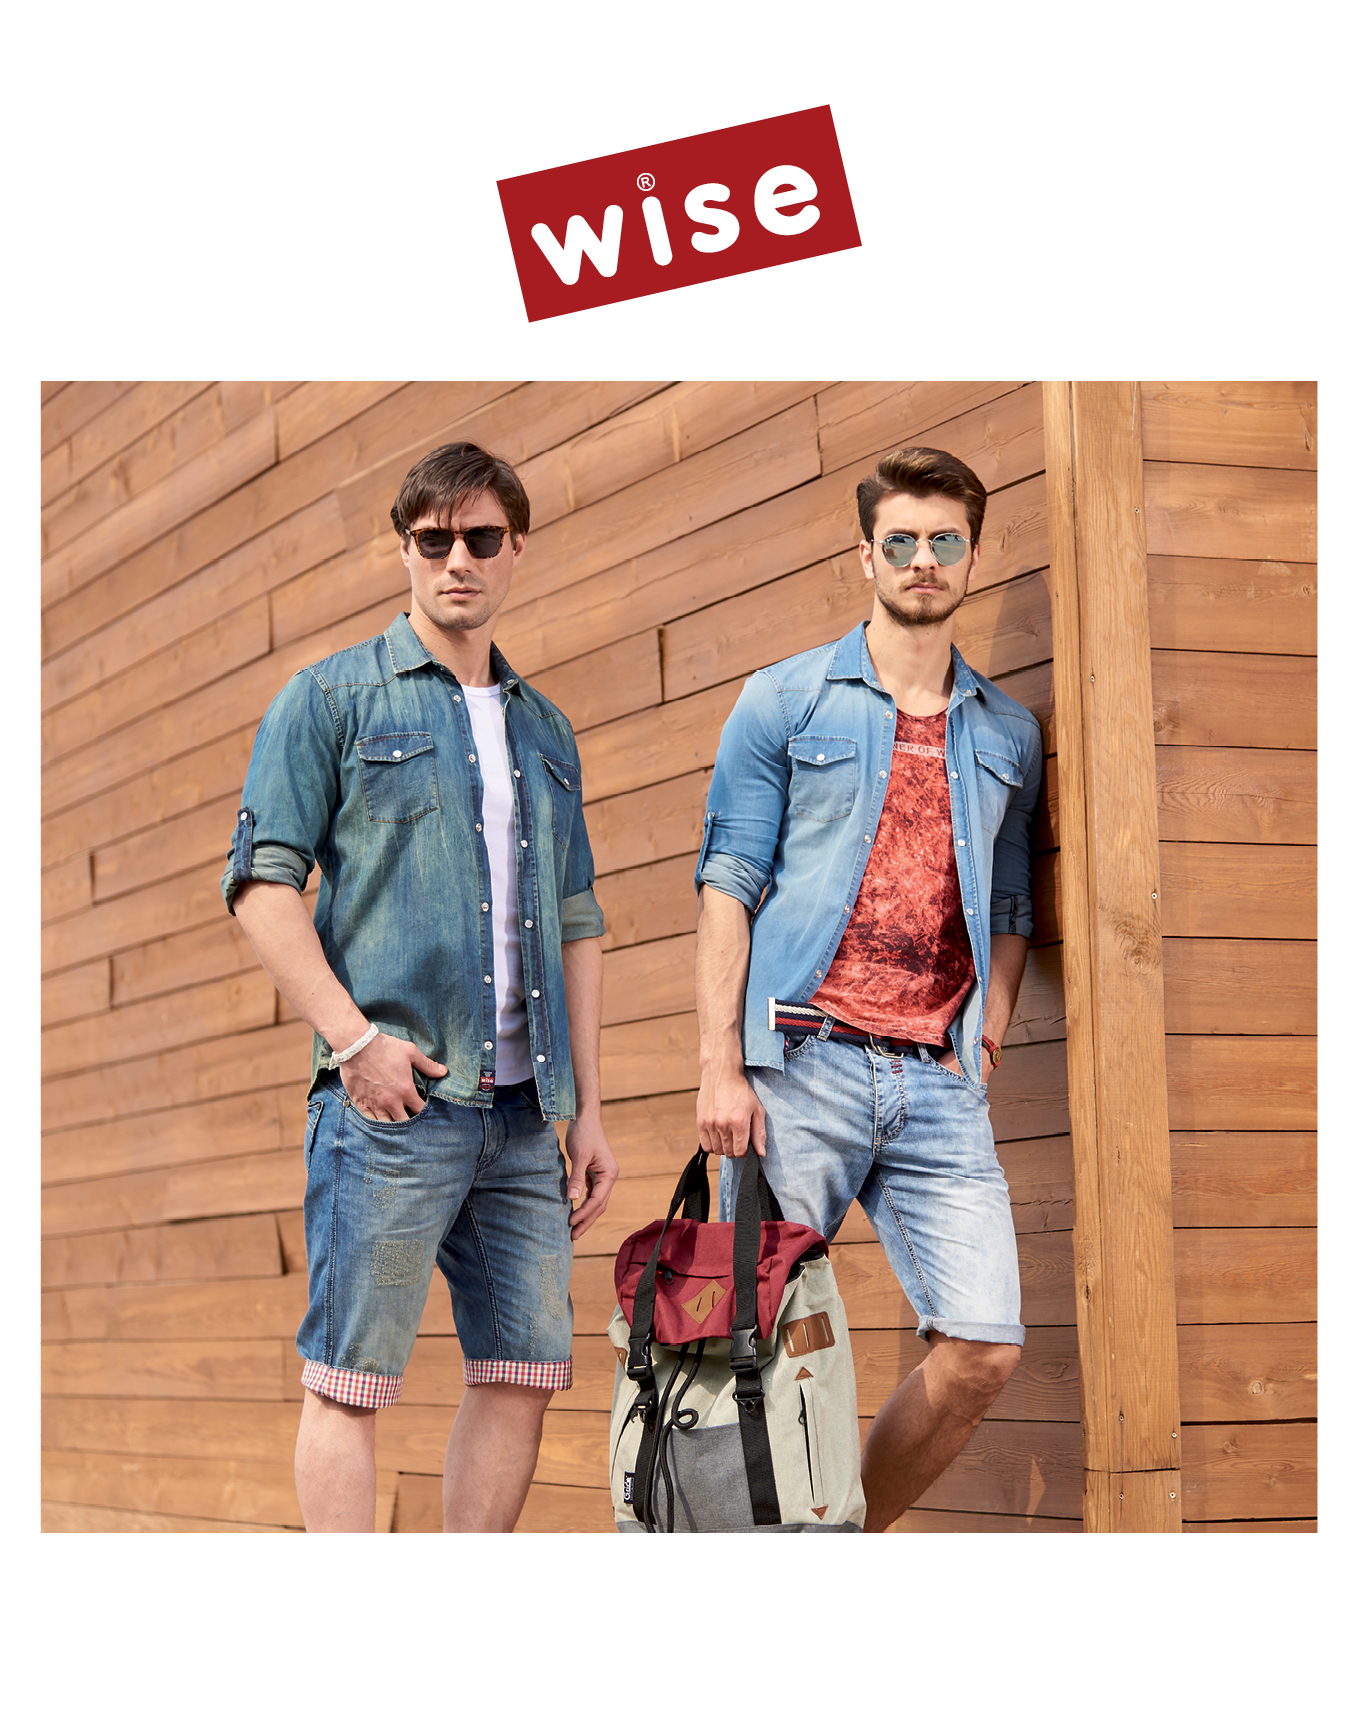 wise_201725